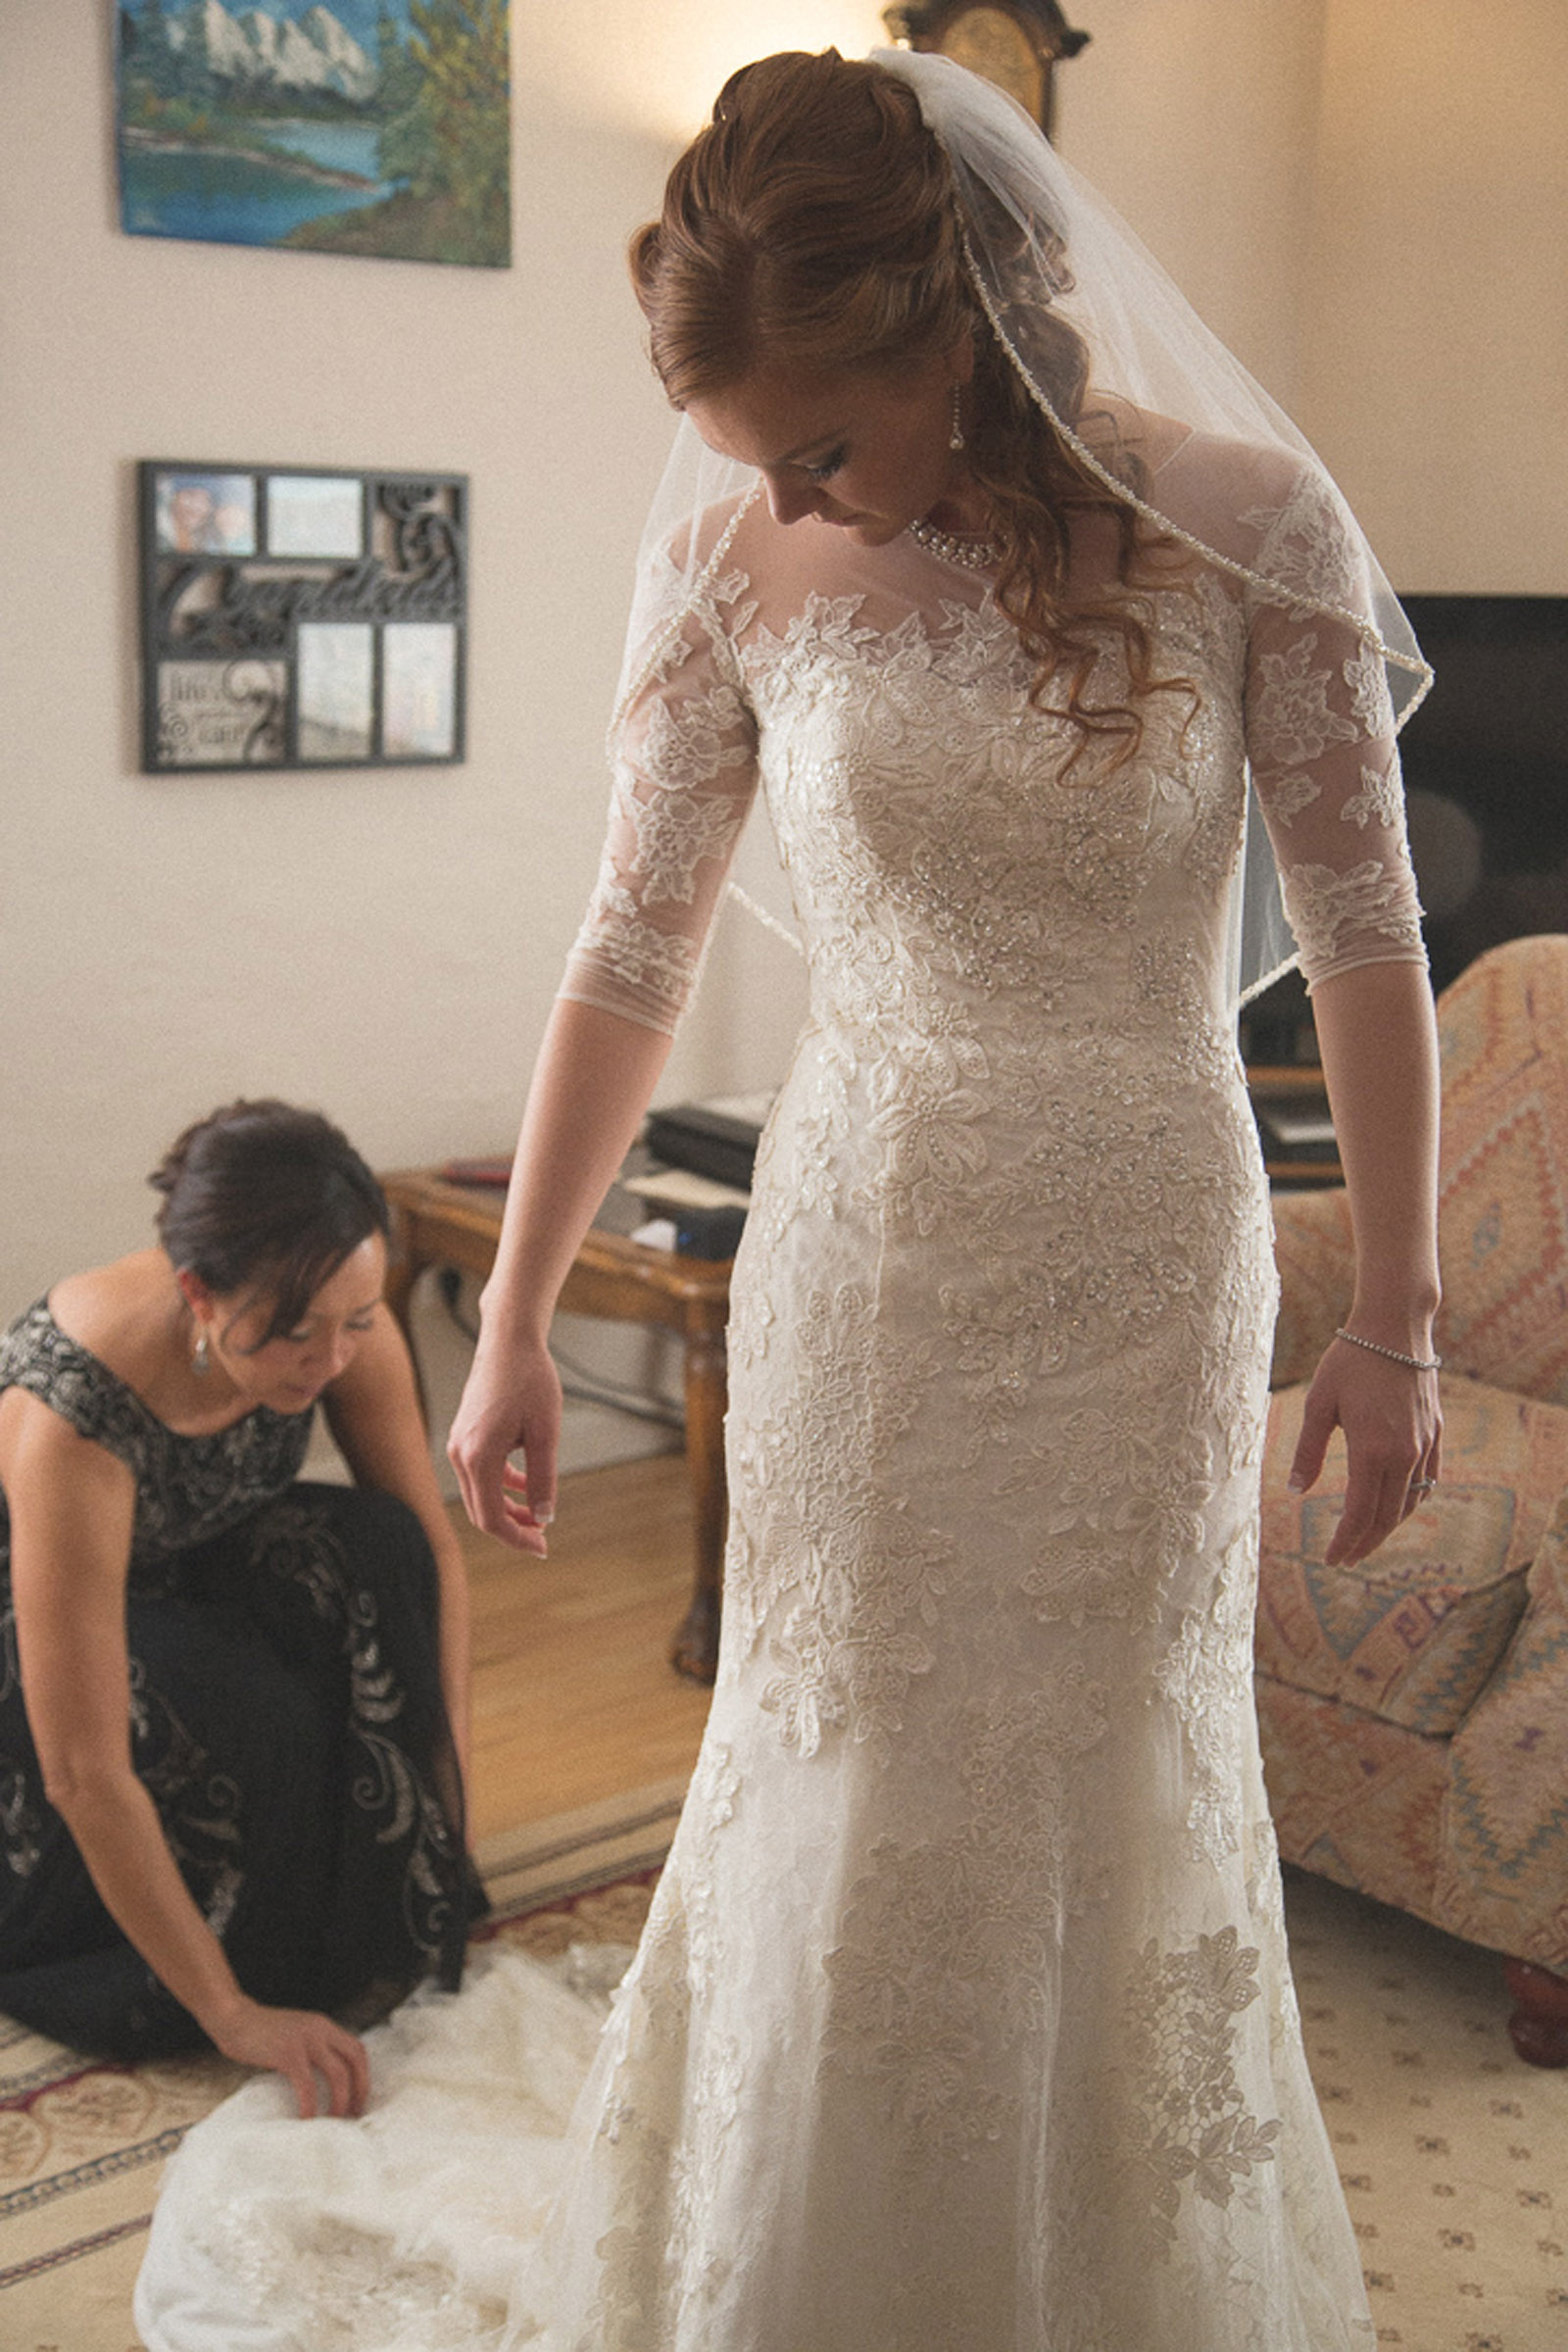 062-getting-ready-with-wedding-dress-first-look-with-daddy-mirabal-photography